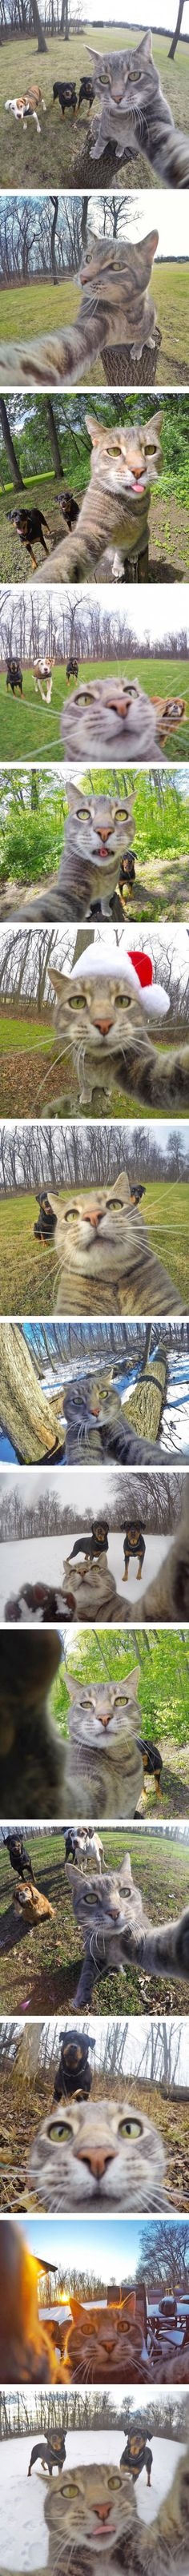 Why would manny be takin selfies when he is being chased by dogs???>>> this cat is so photogenic